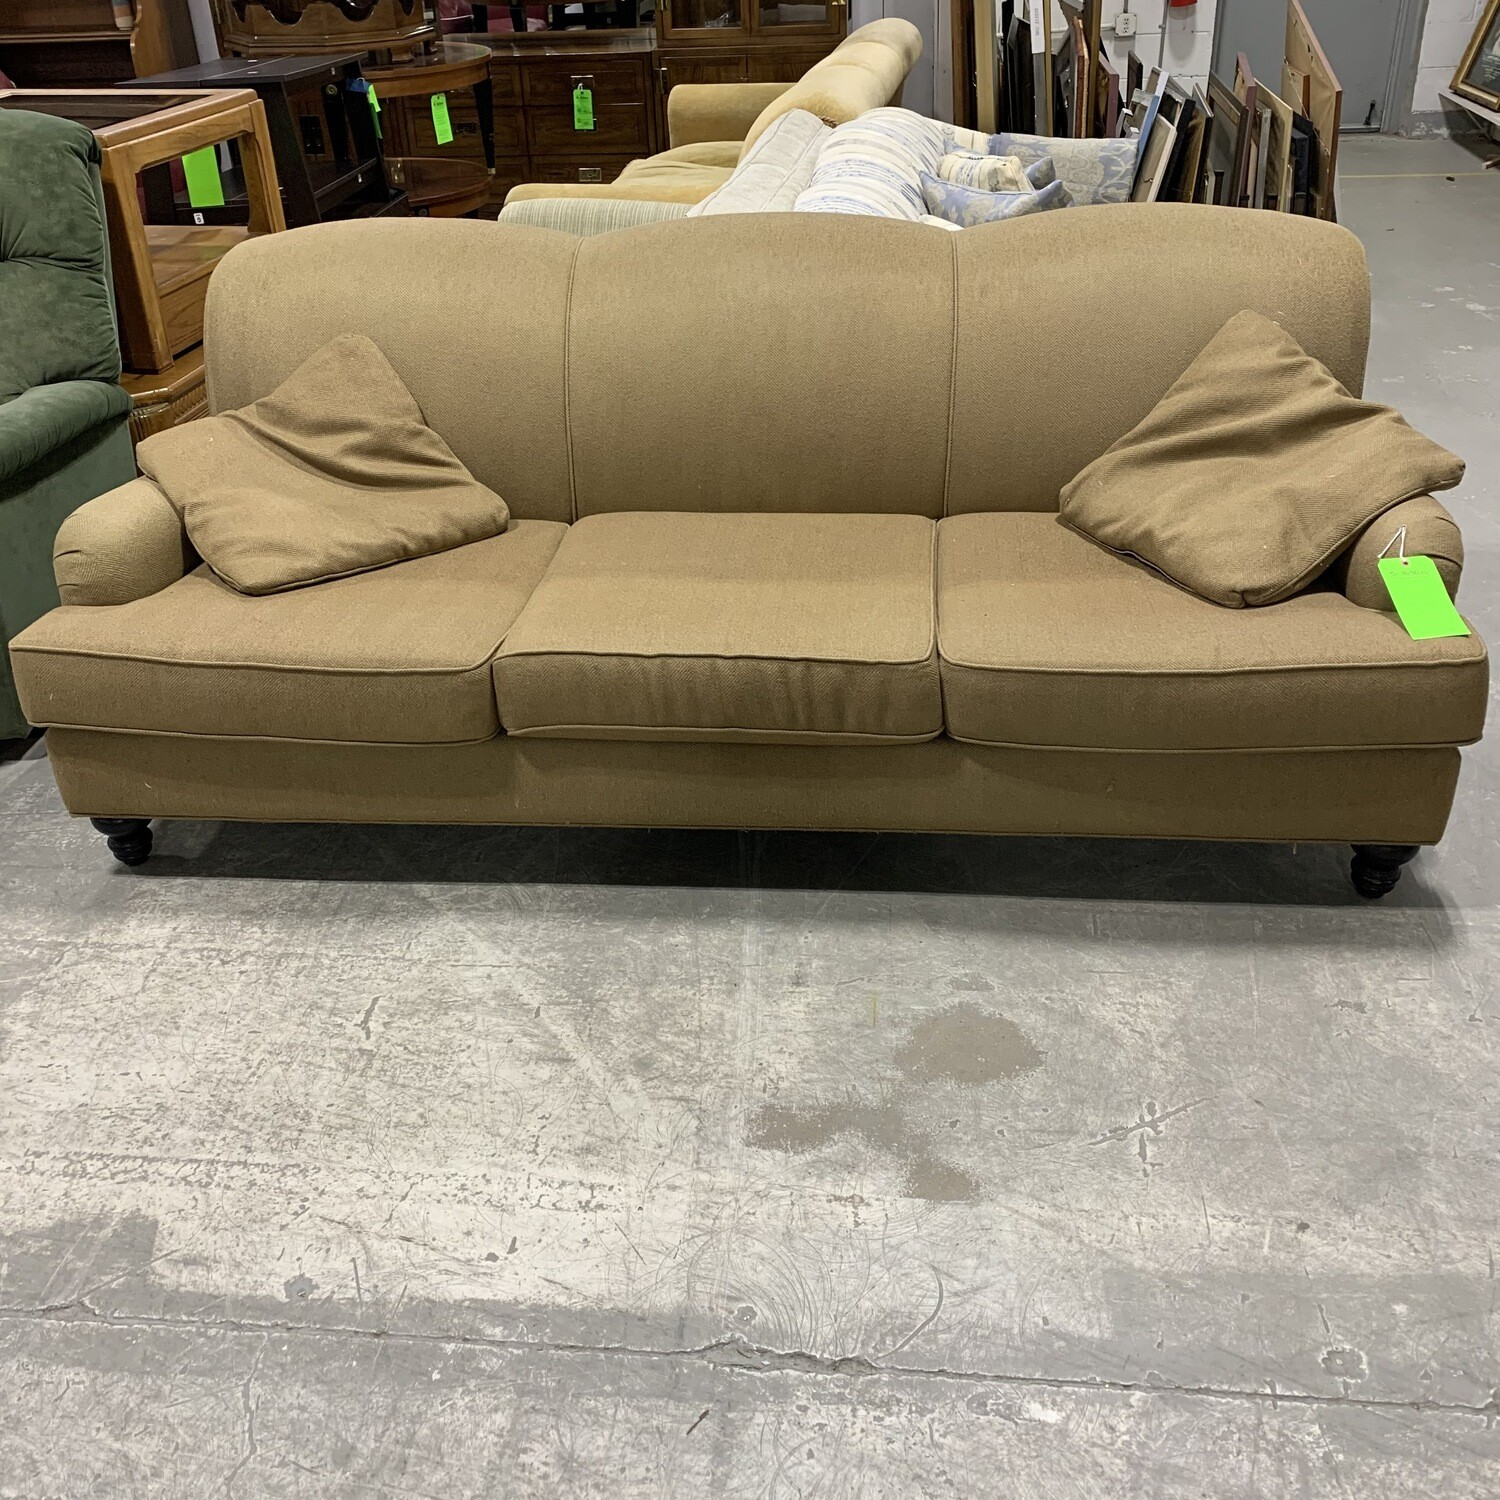 Beige Couch 3